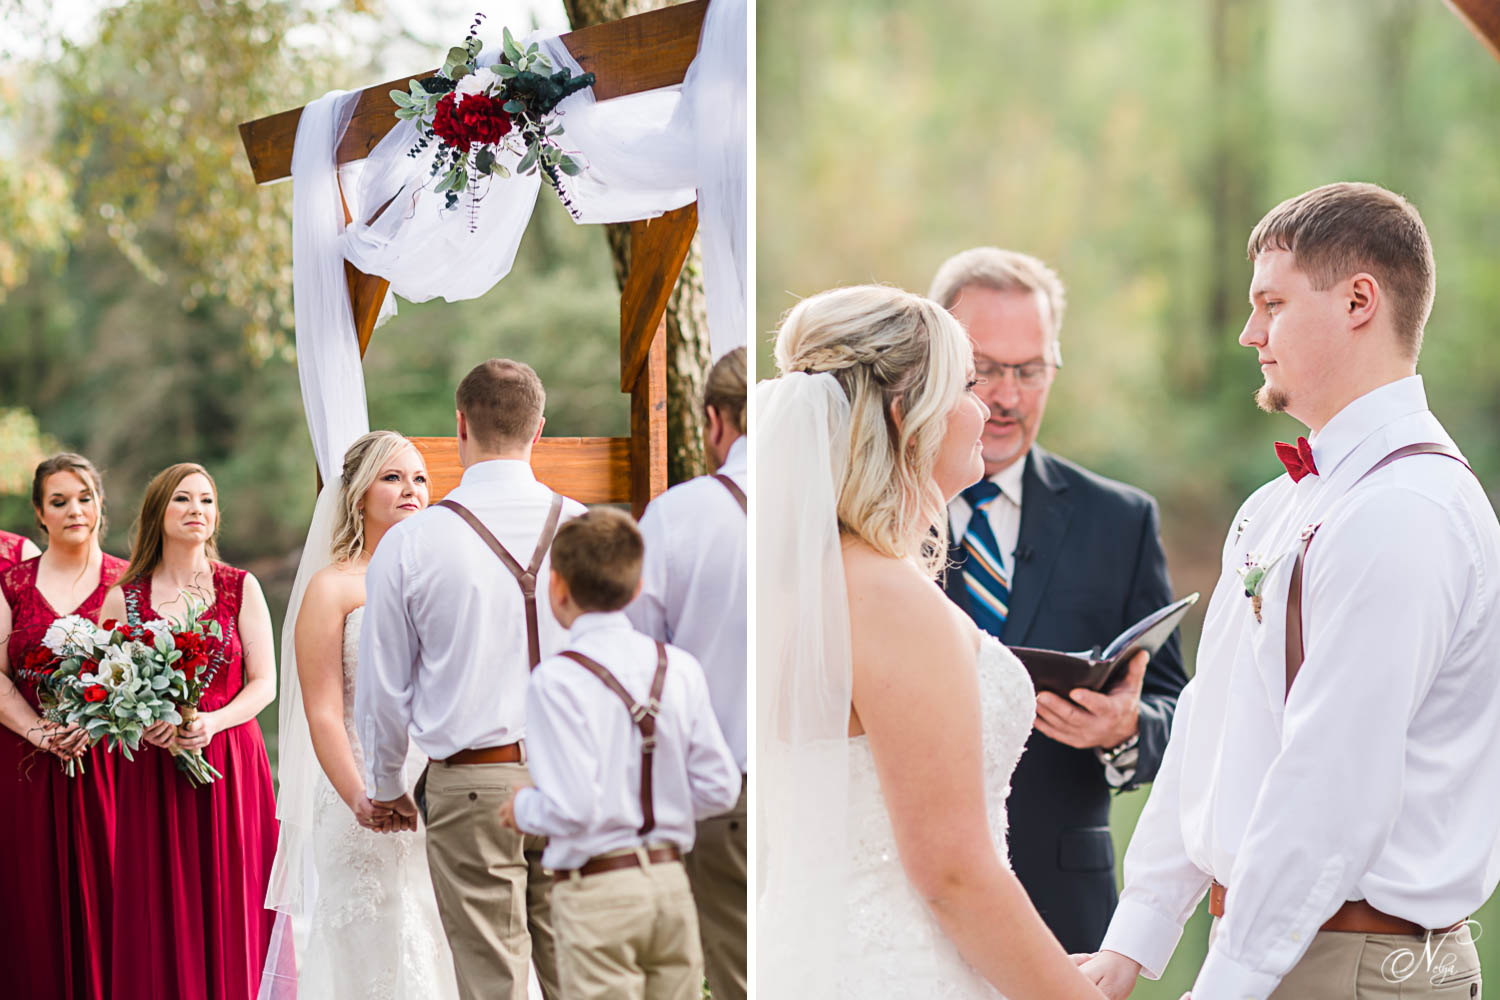 Outside wedding ceremony under handmade wooden wedding arbor at Hiwassee River Weddings